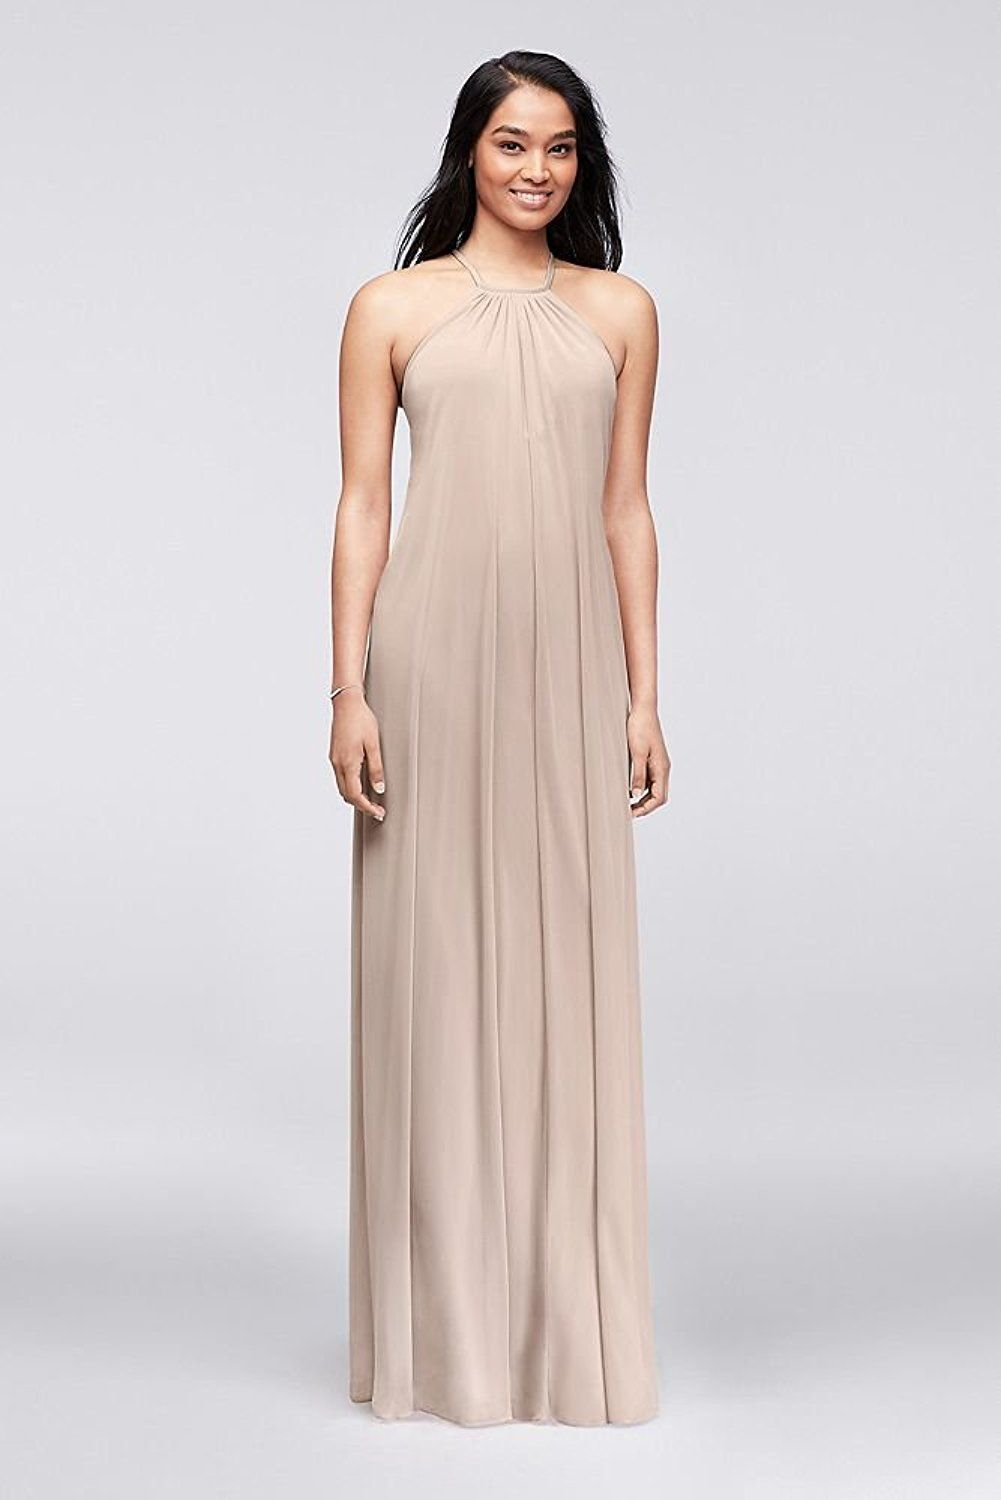 3afc467814 David s Bridal Soft Mesh Halter Bridesmaid Dress with Slim Sash Style  F19533     You can get additional details at the image link.